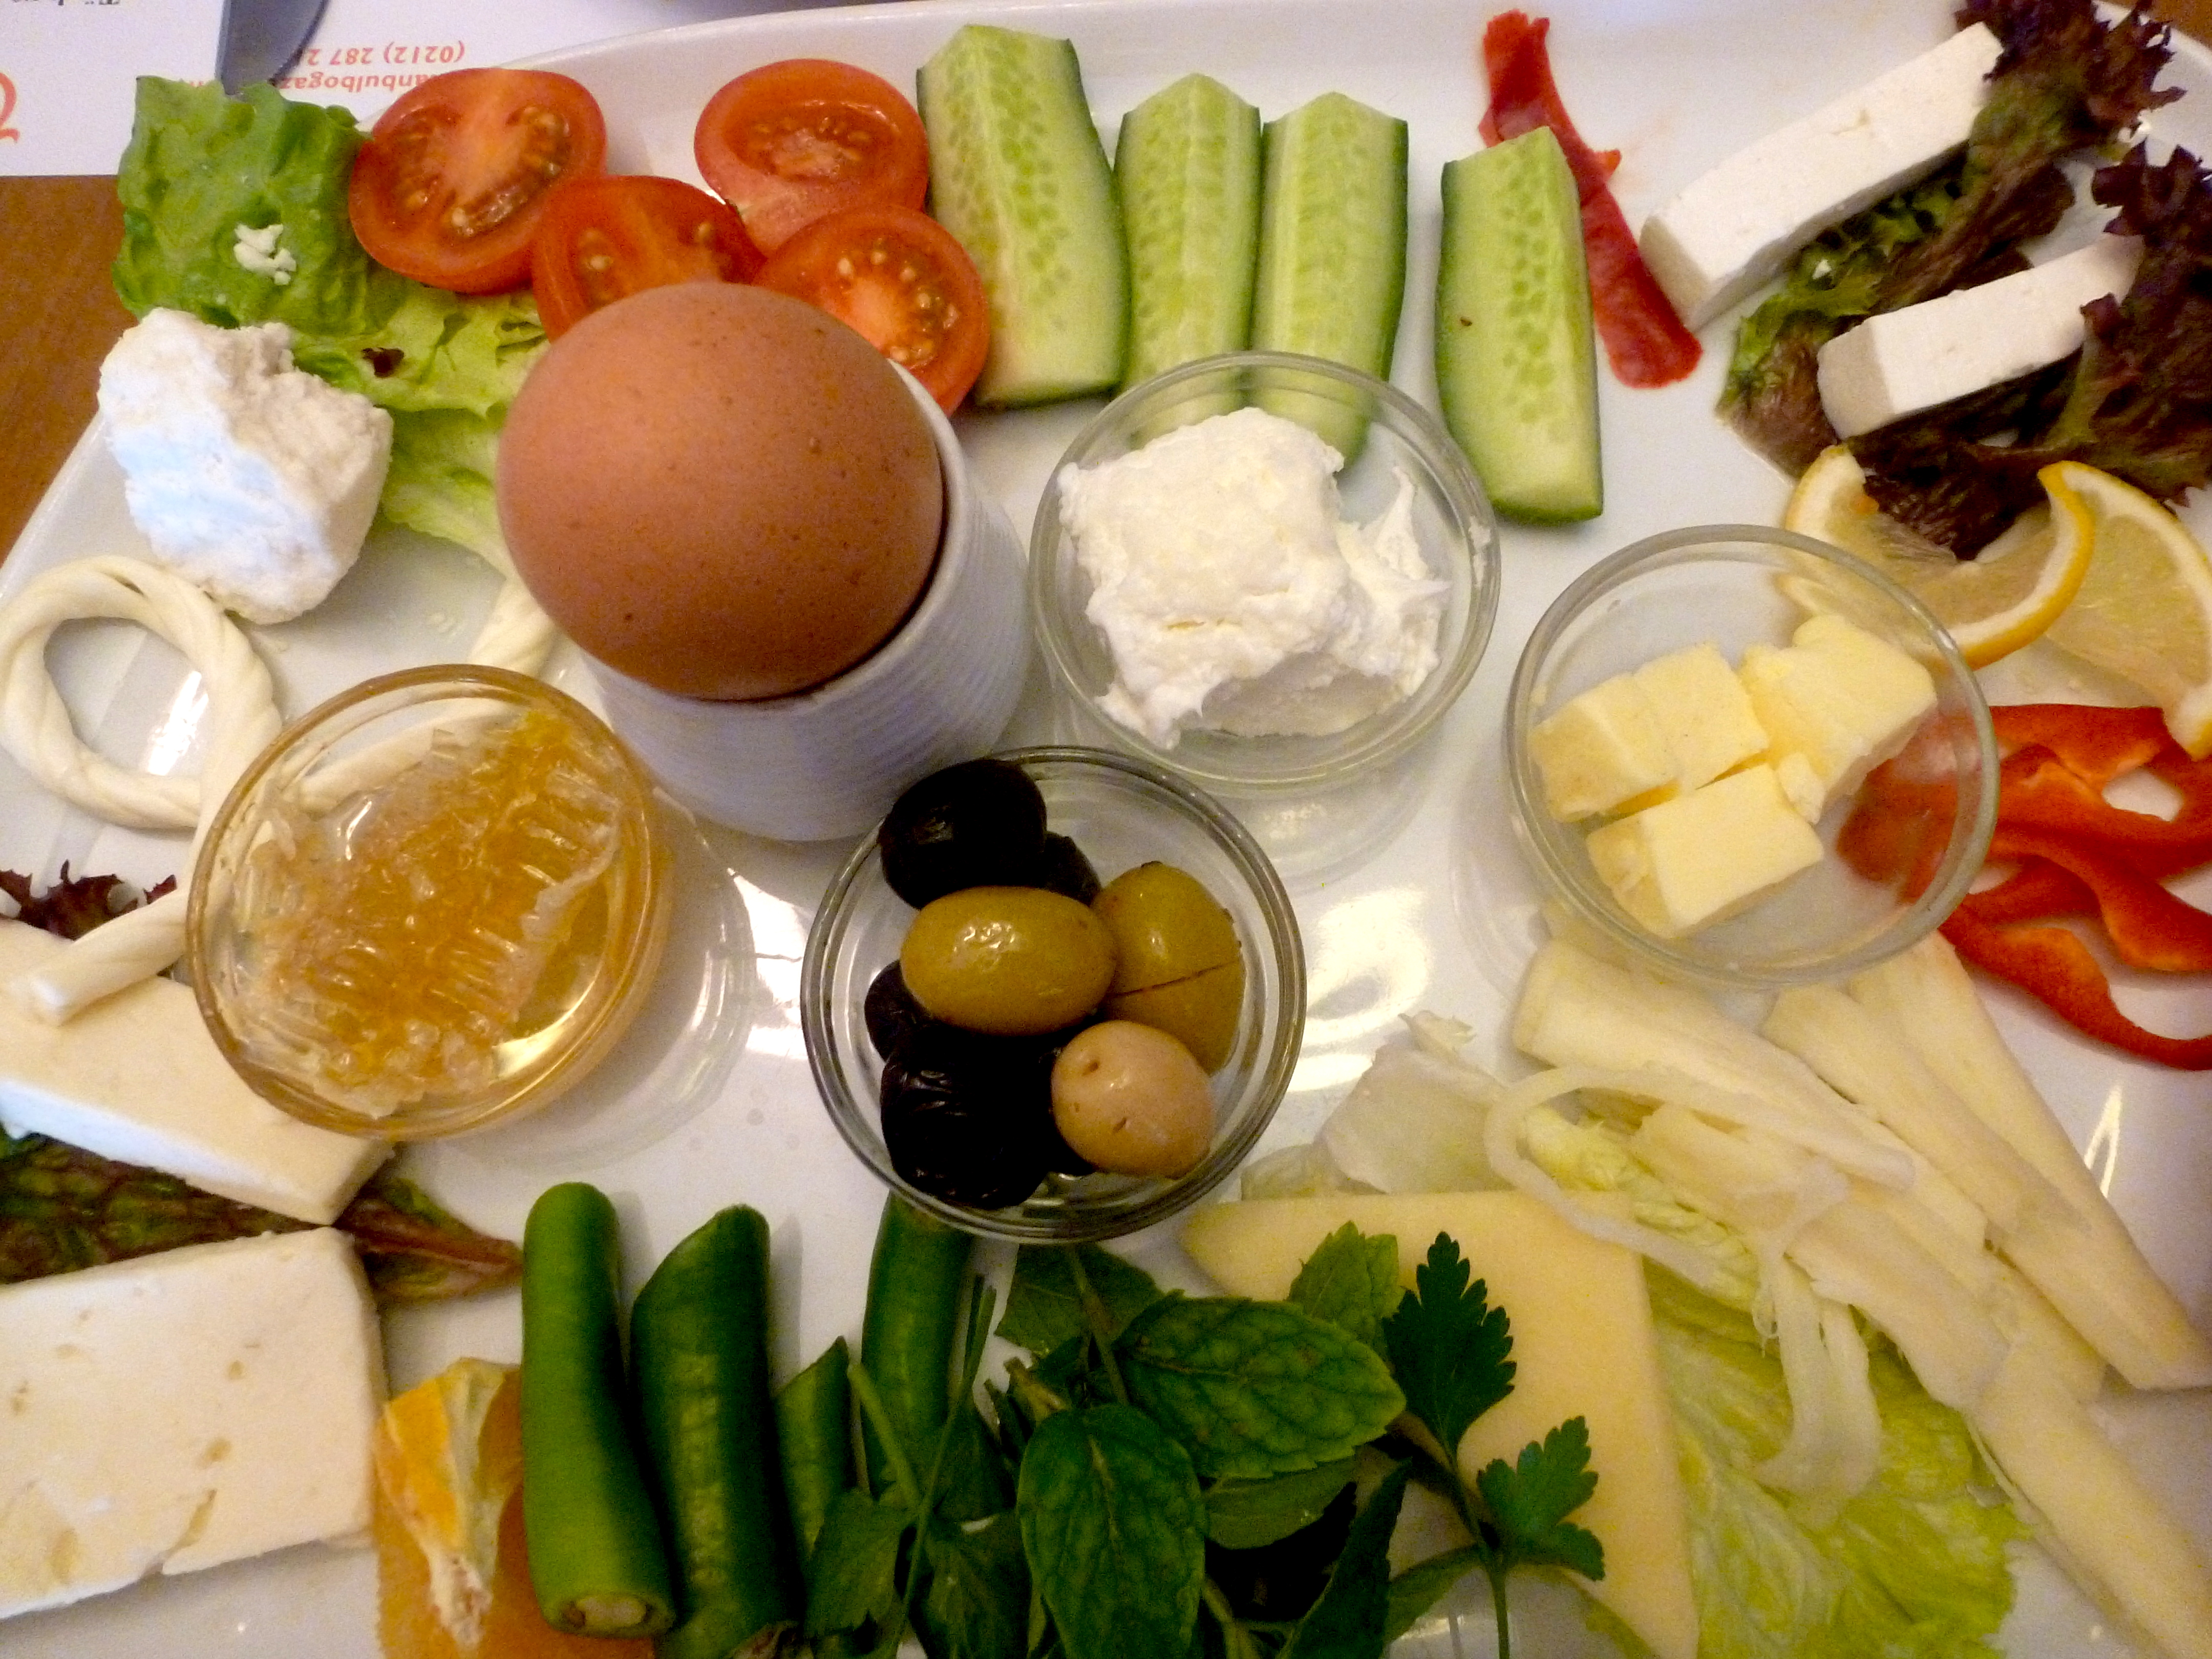 Typical Turkish breakfast (not pictured: bread and unlimited tea)